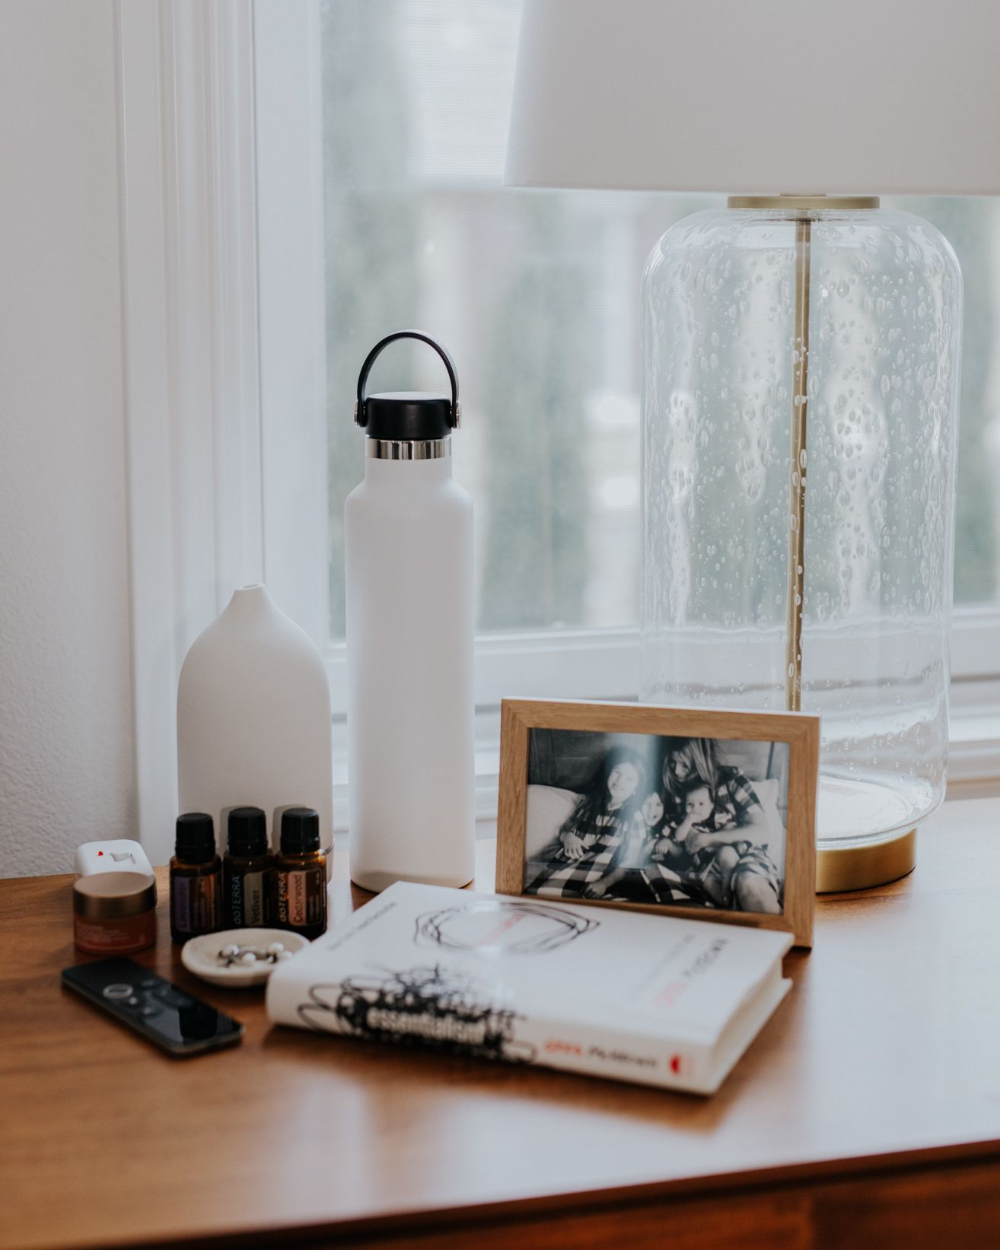 The nightstand is personal yet universal + it's always fun to see what you can't fall asleep without! What do you grab at 10pm, 2 am & when you wake up?